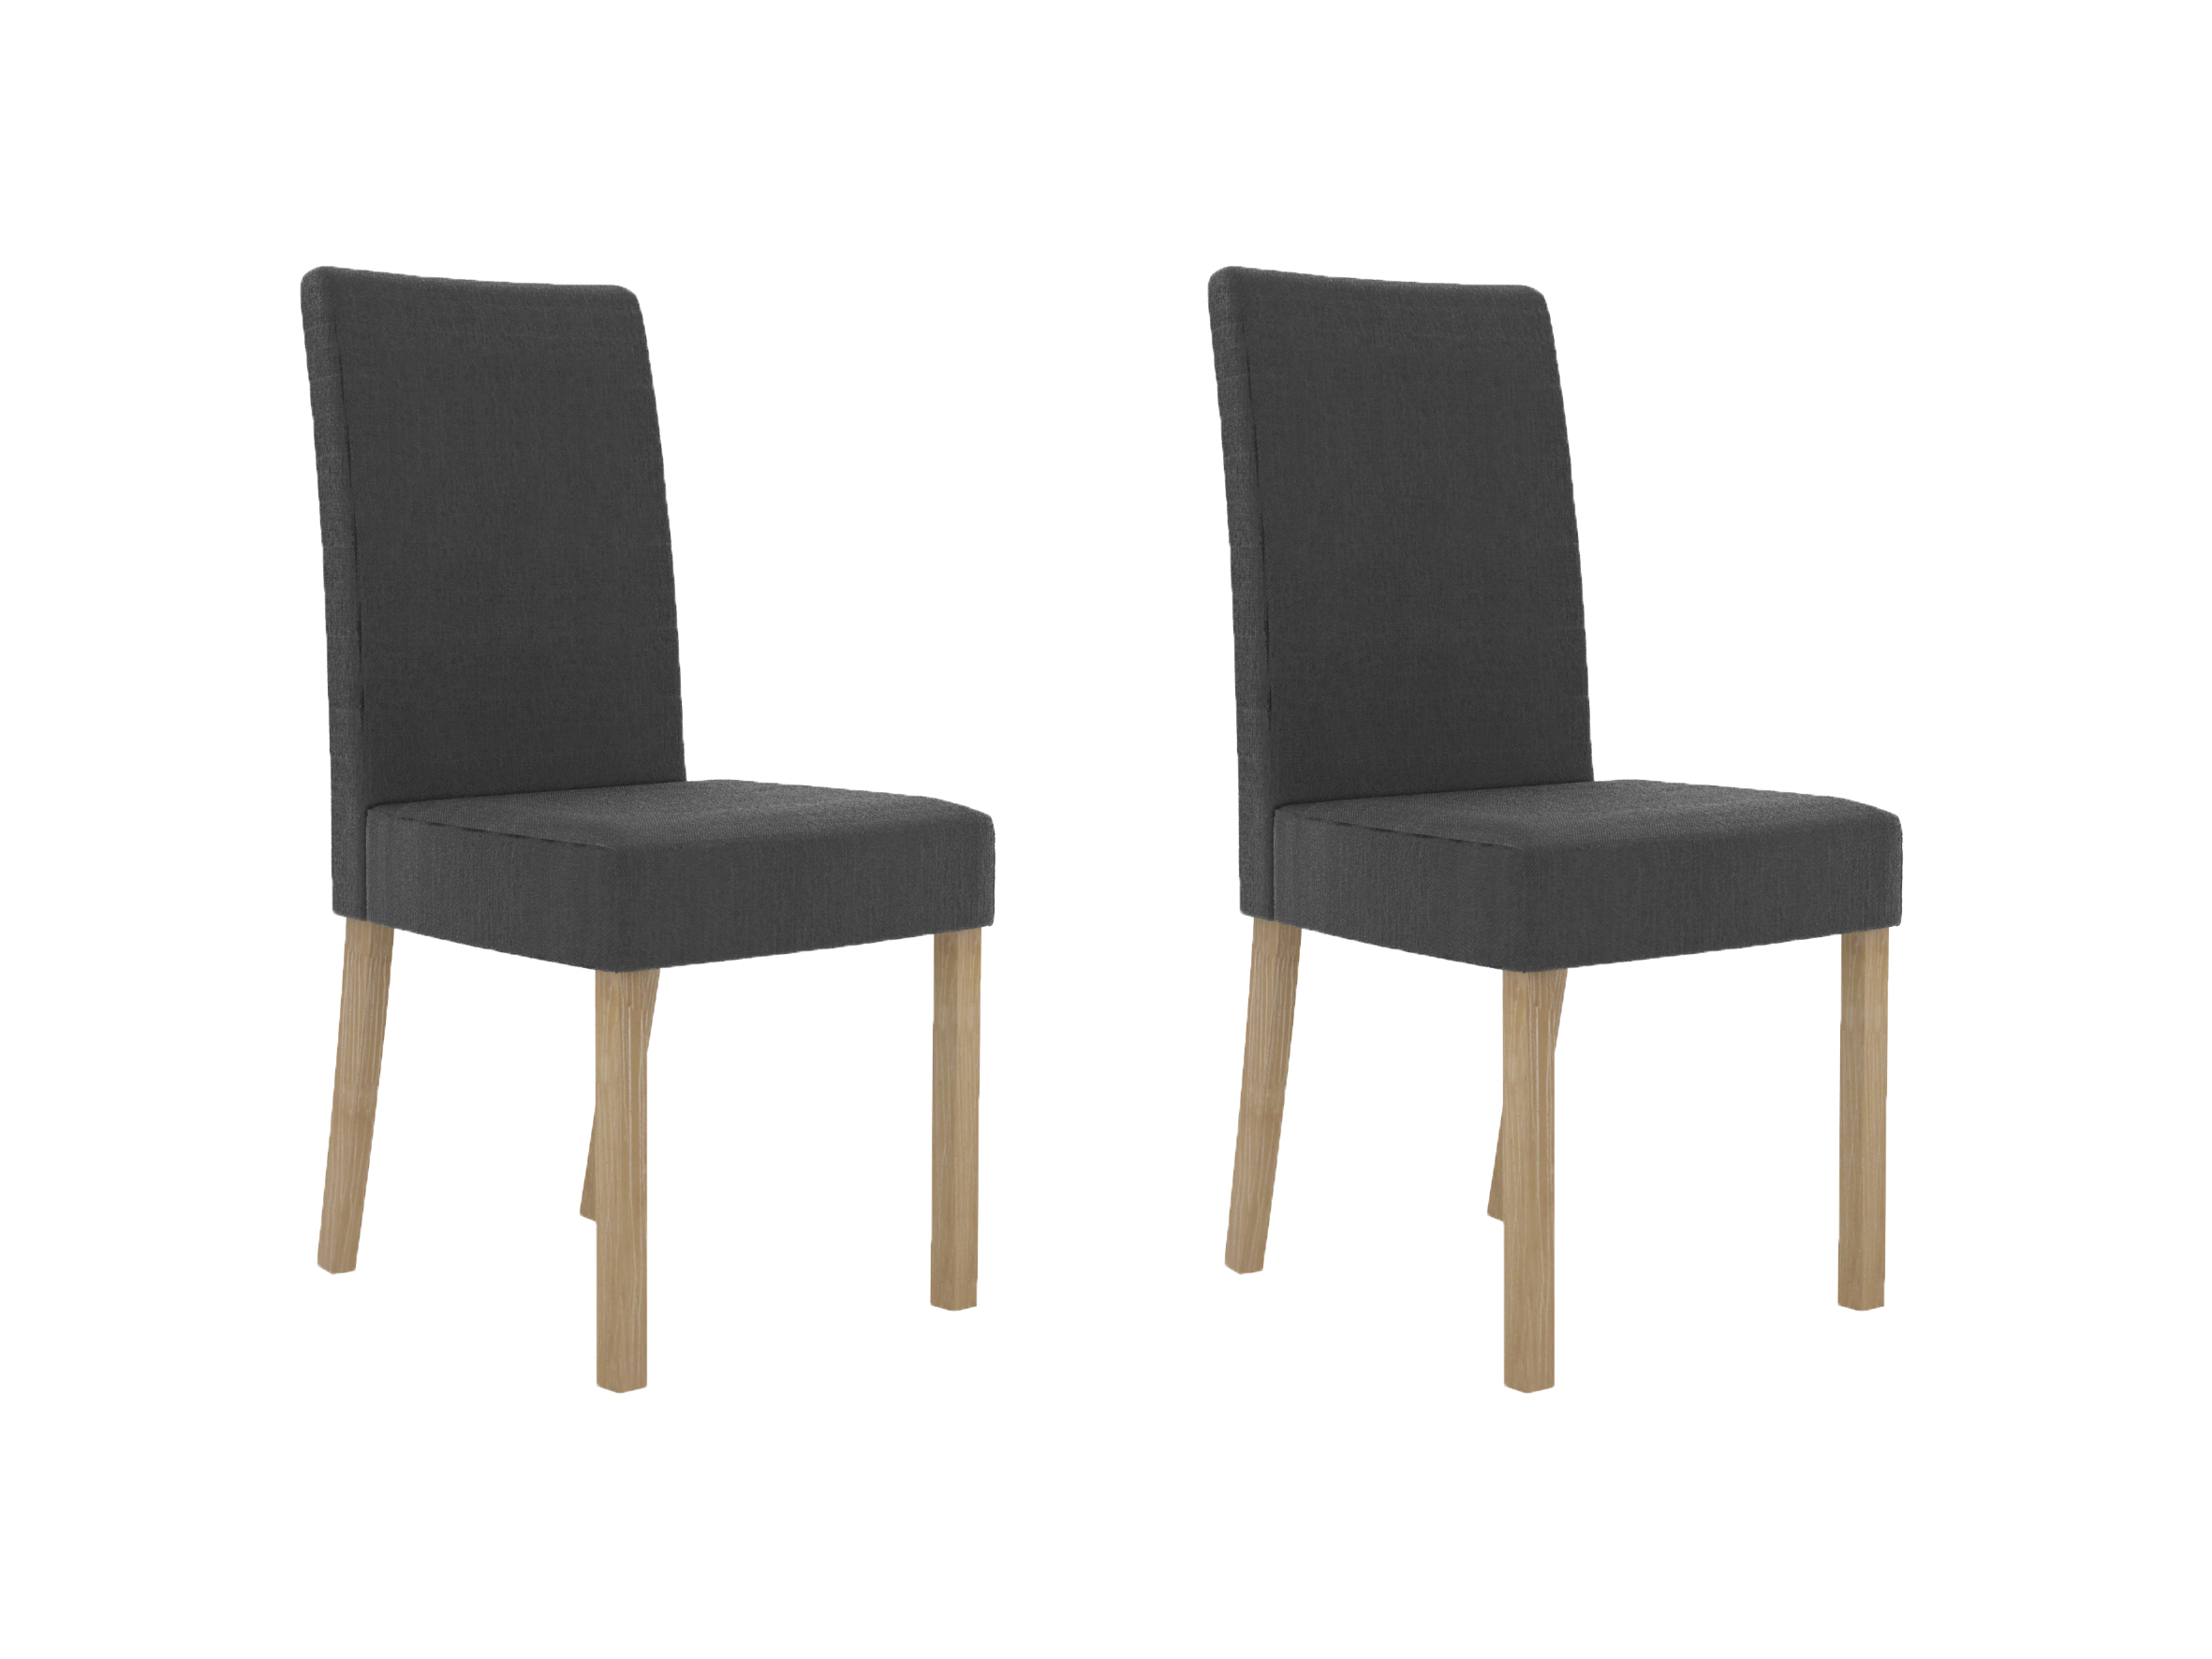 Melodie Chair Charcoal (Pack of 2)